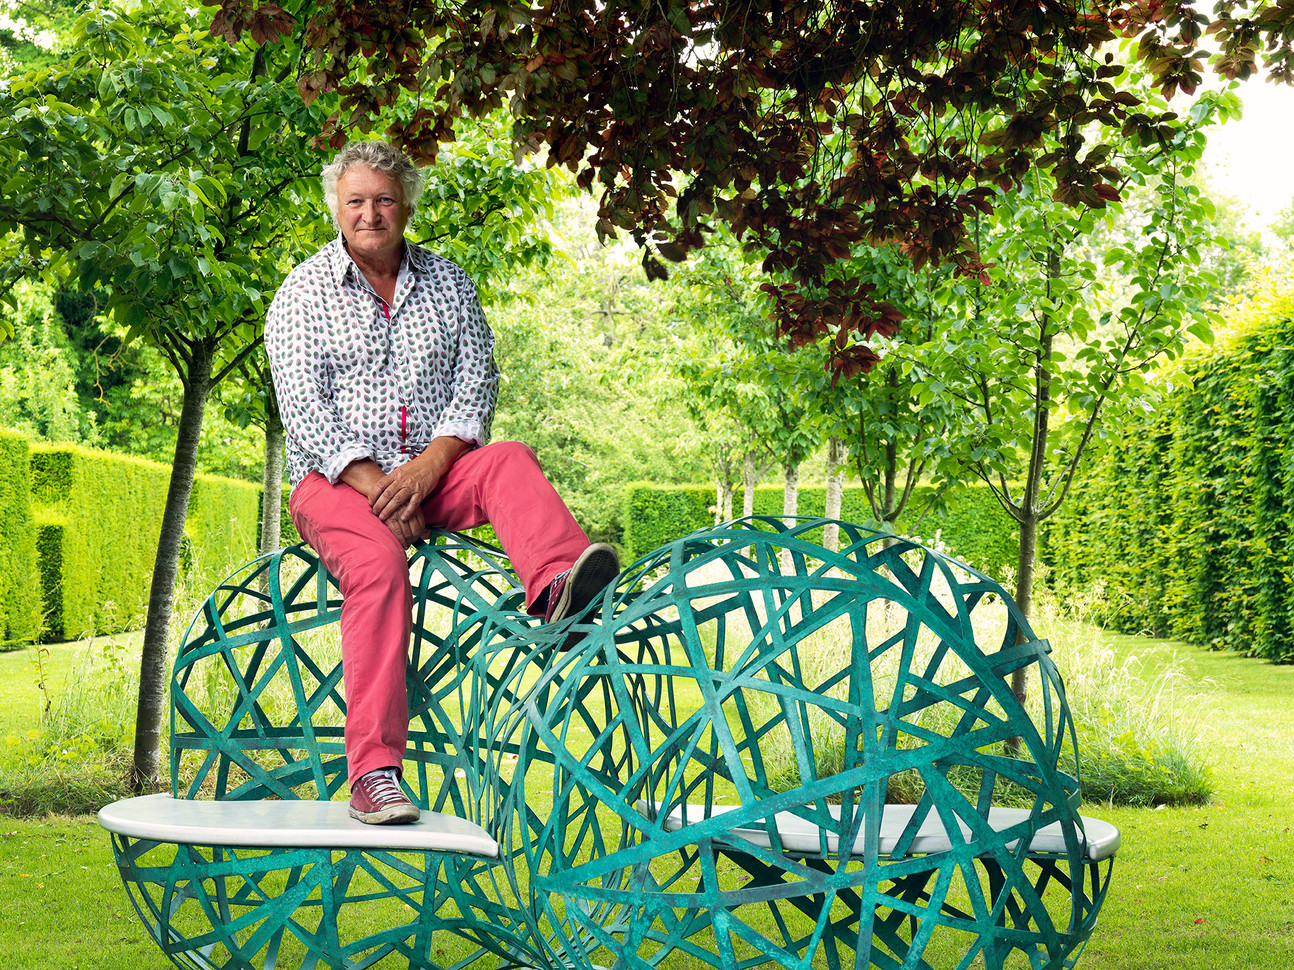 David Harber, Sculptures for Gardens, for Country Life